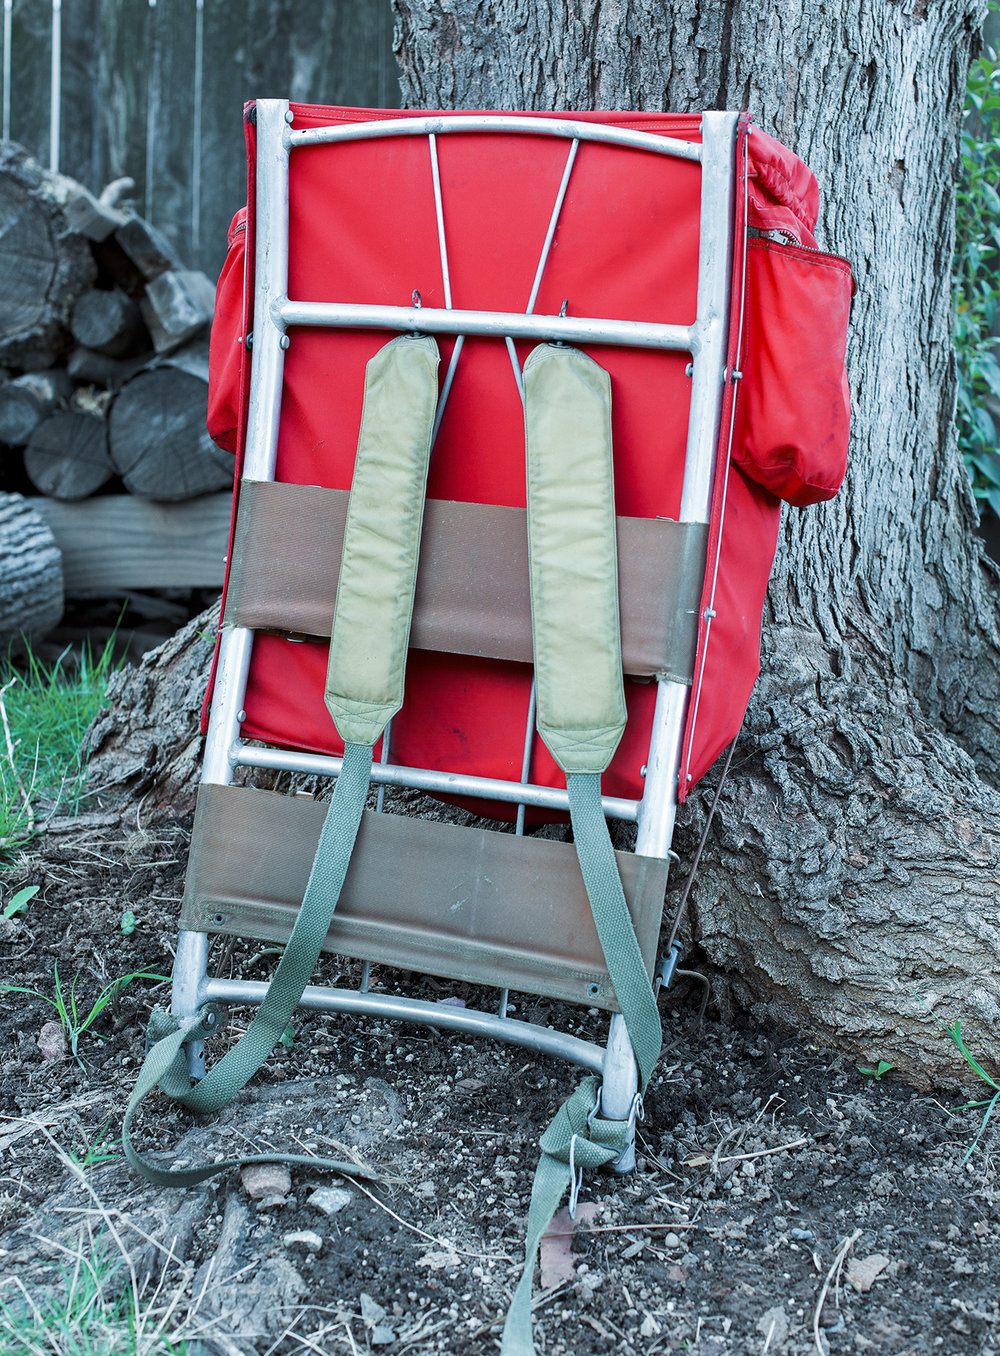 The human side of the pack. This is an early pack with the second version of the  hip strap  with the quick-release buckle. Note the padded shoulder straps, a Kelty first. Other Kelty firsts were the hip strap, aluminum frame, clevis pin method of attaching the pack bag and hold-open bar at the top of the bag. The advantage of a frame pack over an internal frame pack is that it can carry a heavier load more comfortably and lets air circulate between the pack and the packer. The main cross bars are welded to the curved uprights, creating a very stiff and strong structure.